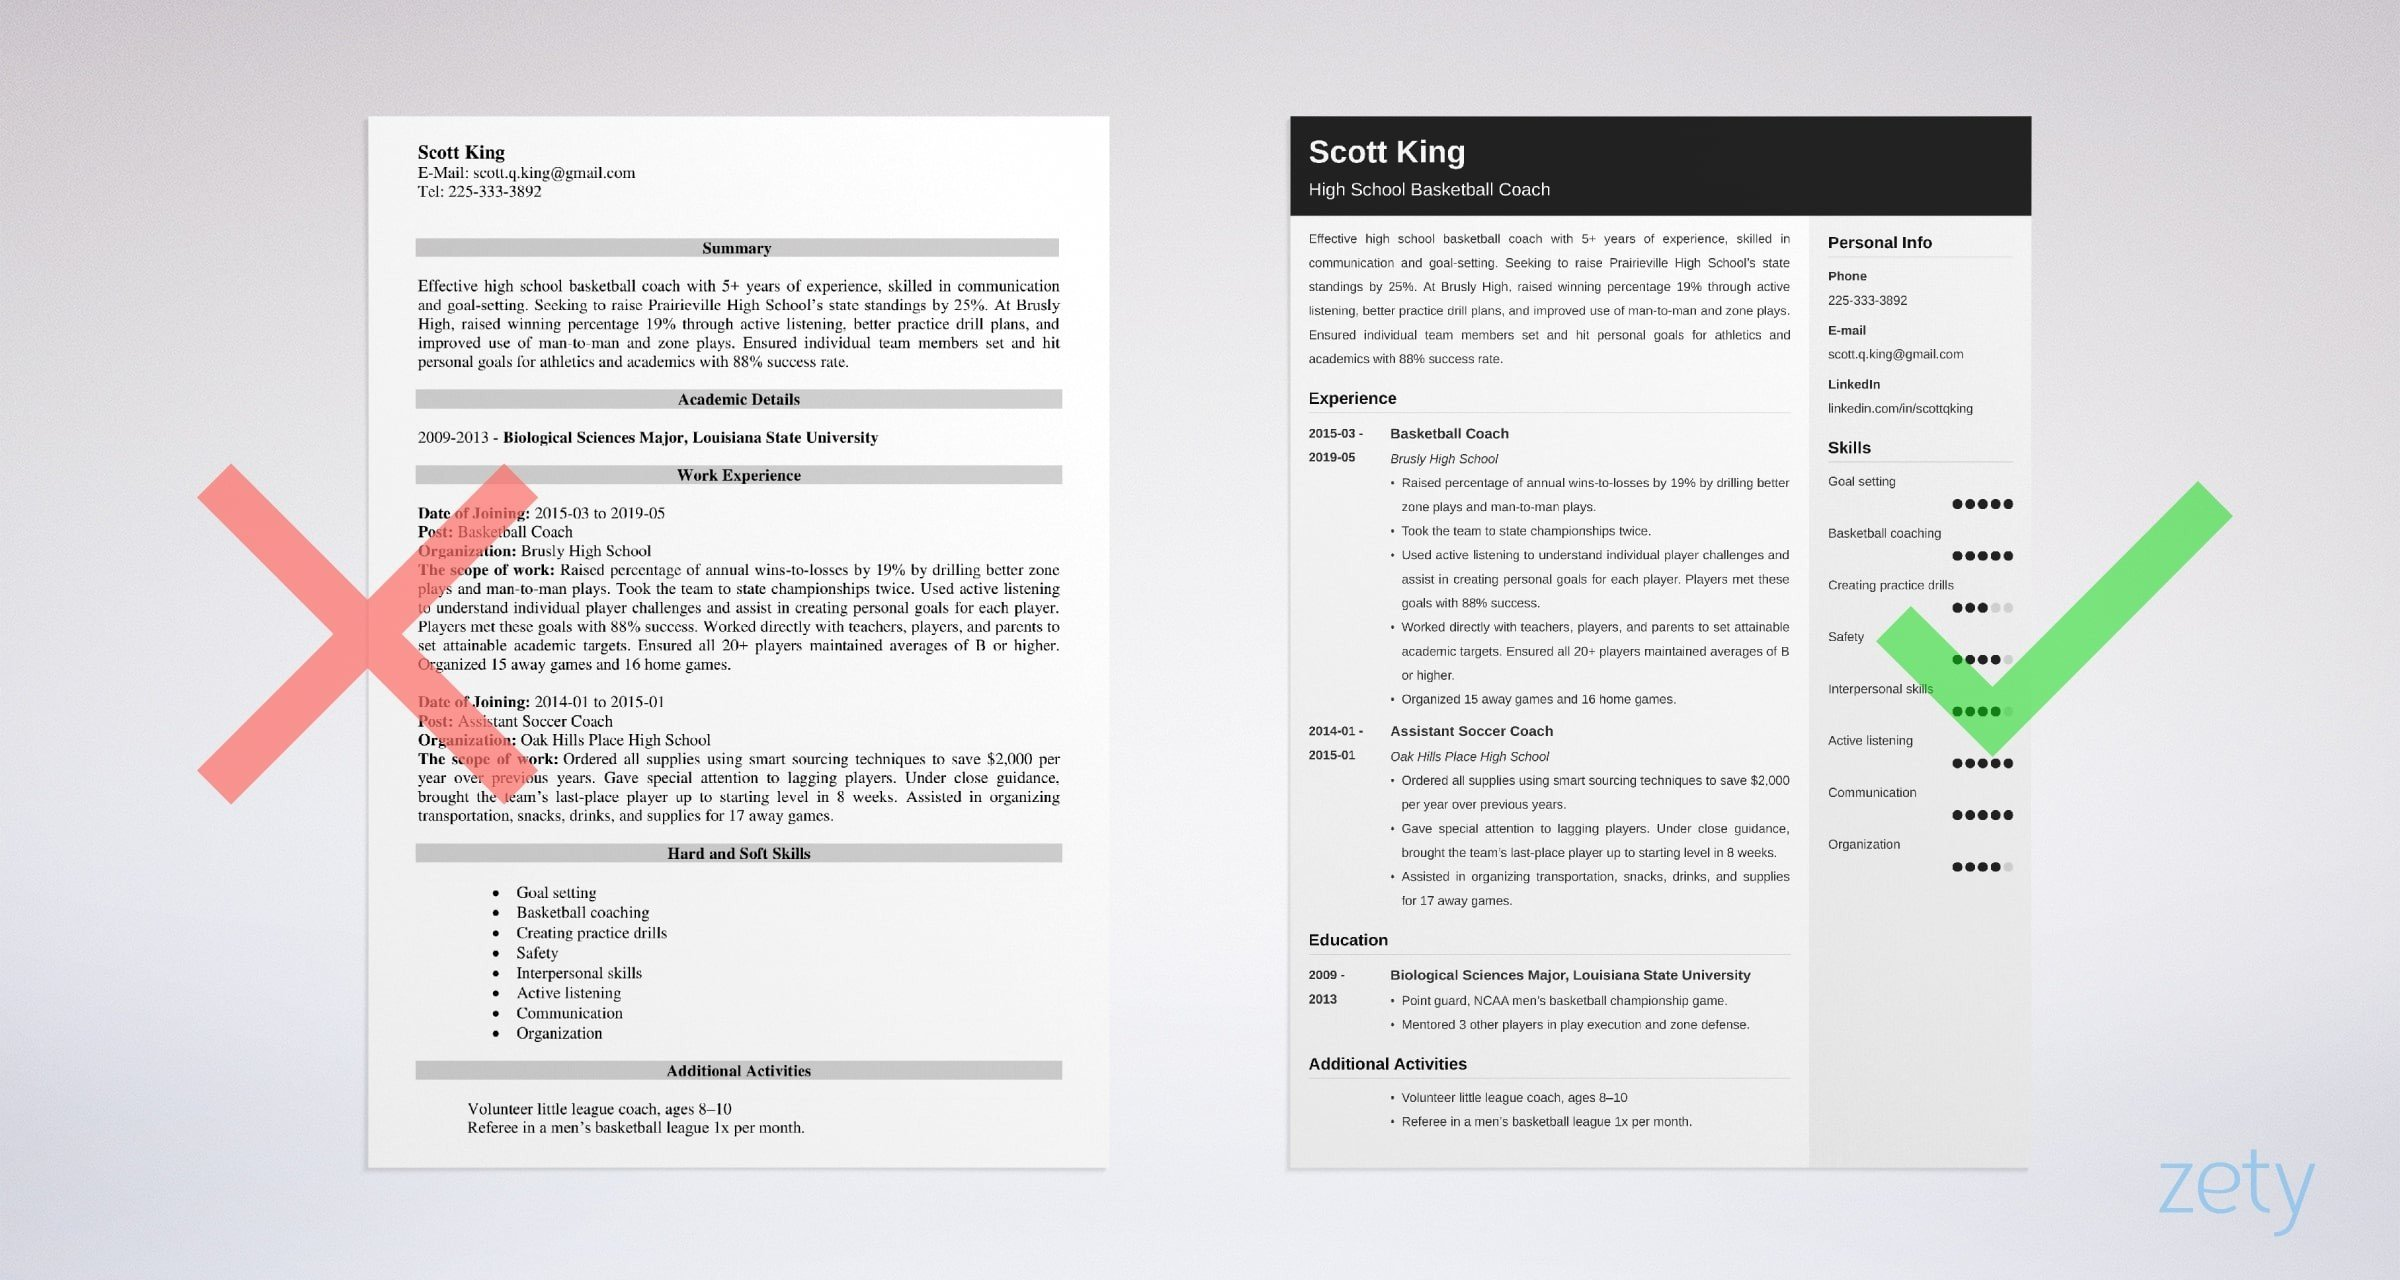 coaching resume samples also for high school coach jobs free templates example lease Resume Free Coaching Resume Templates